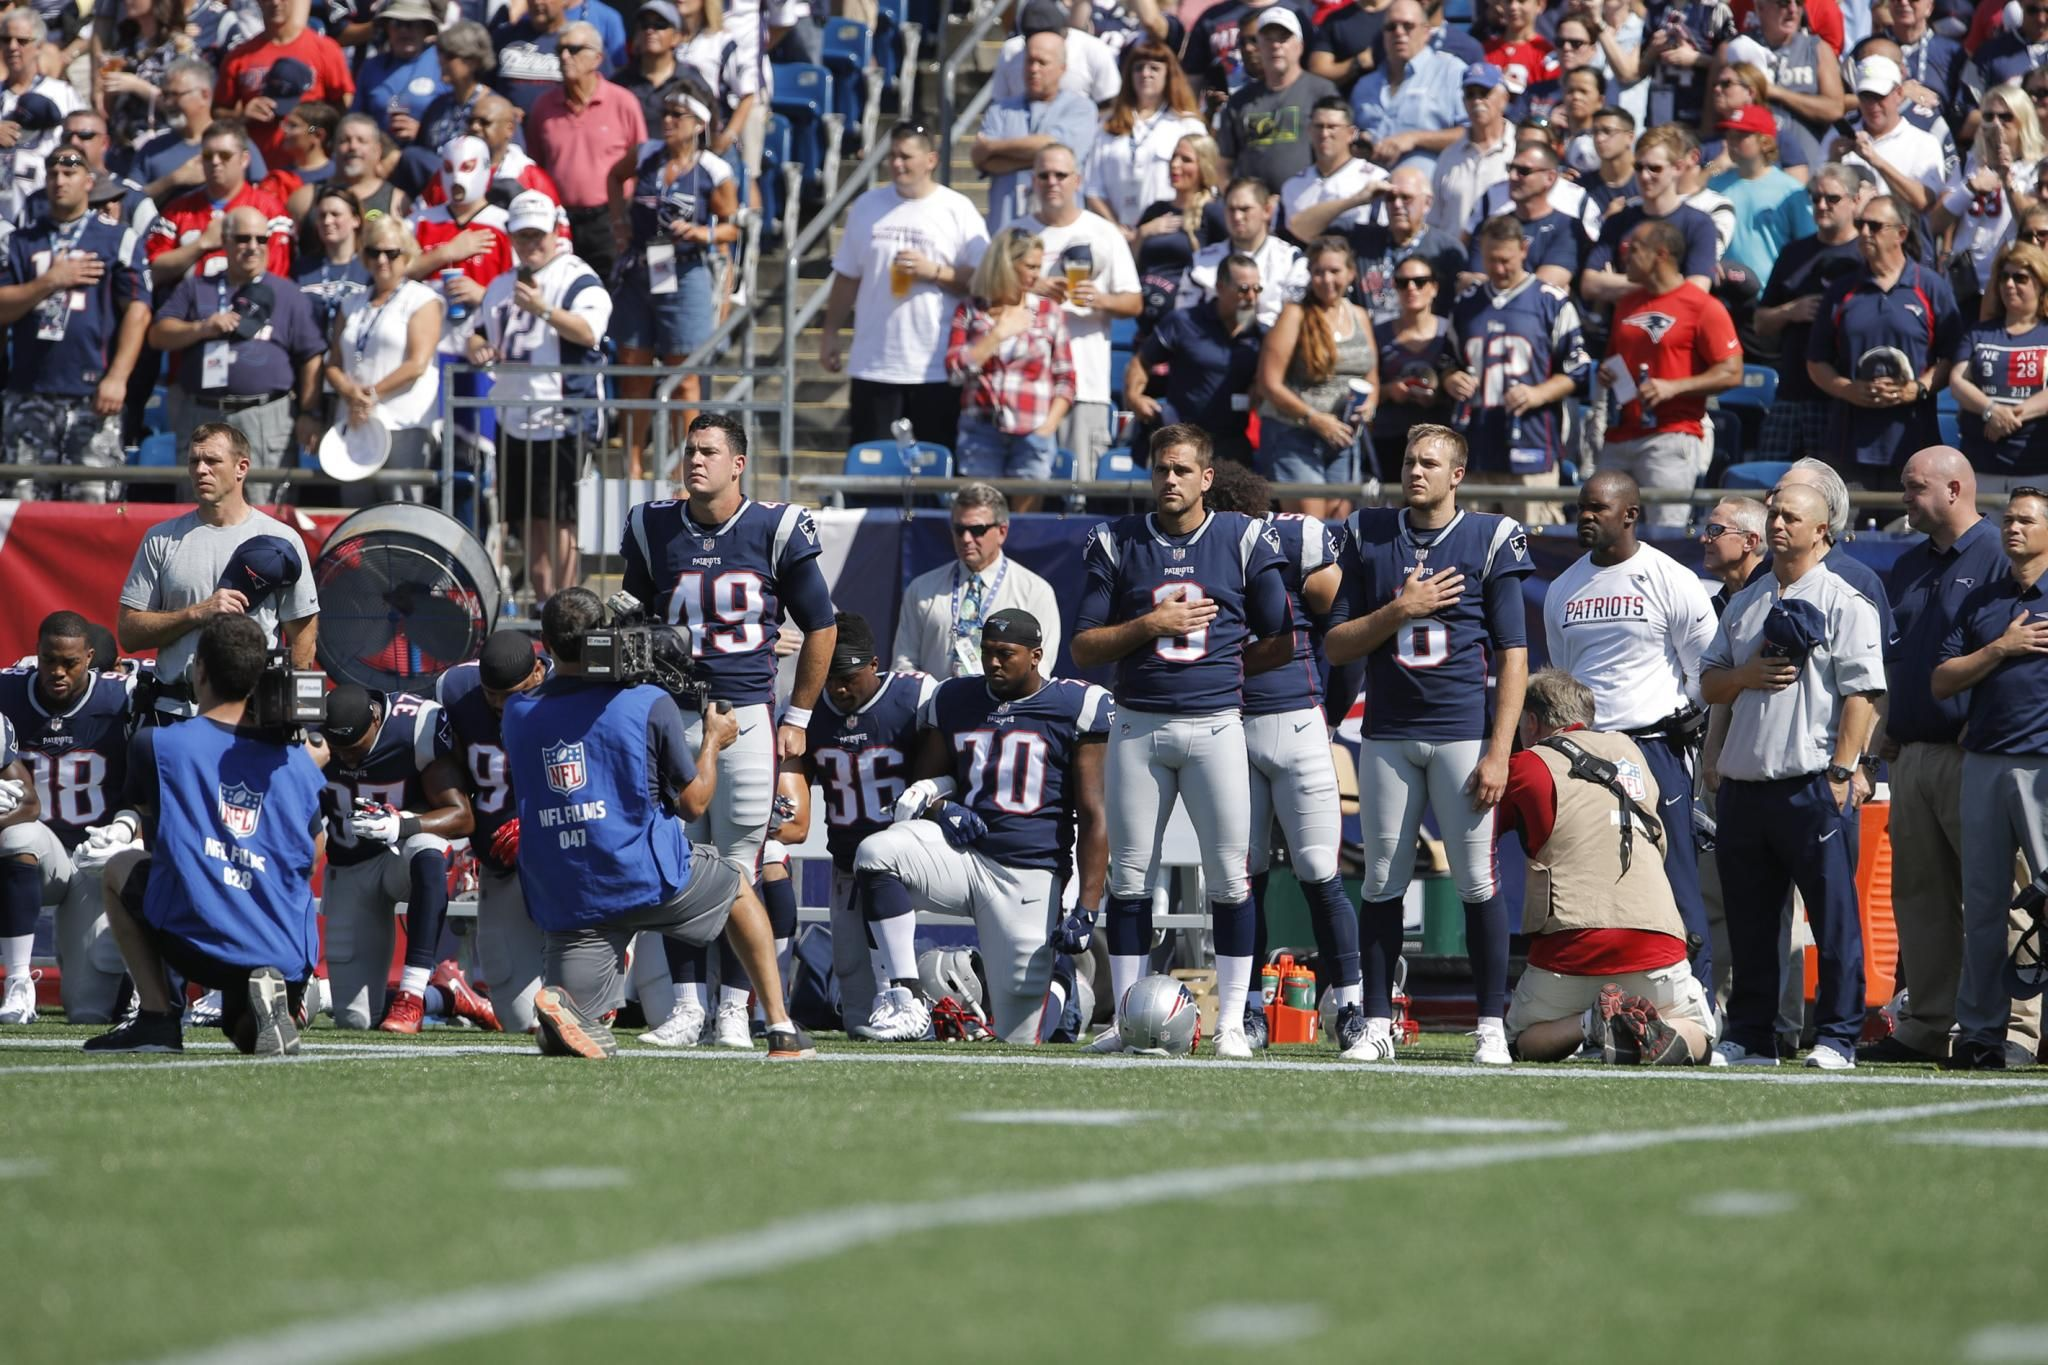 Fox Sports President Nfl National Anthems Will Not Be Shown On Tv Which Includes Patriots Panthers Jersey Patriots Football Kneeling National Anthem